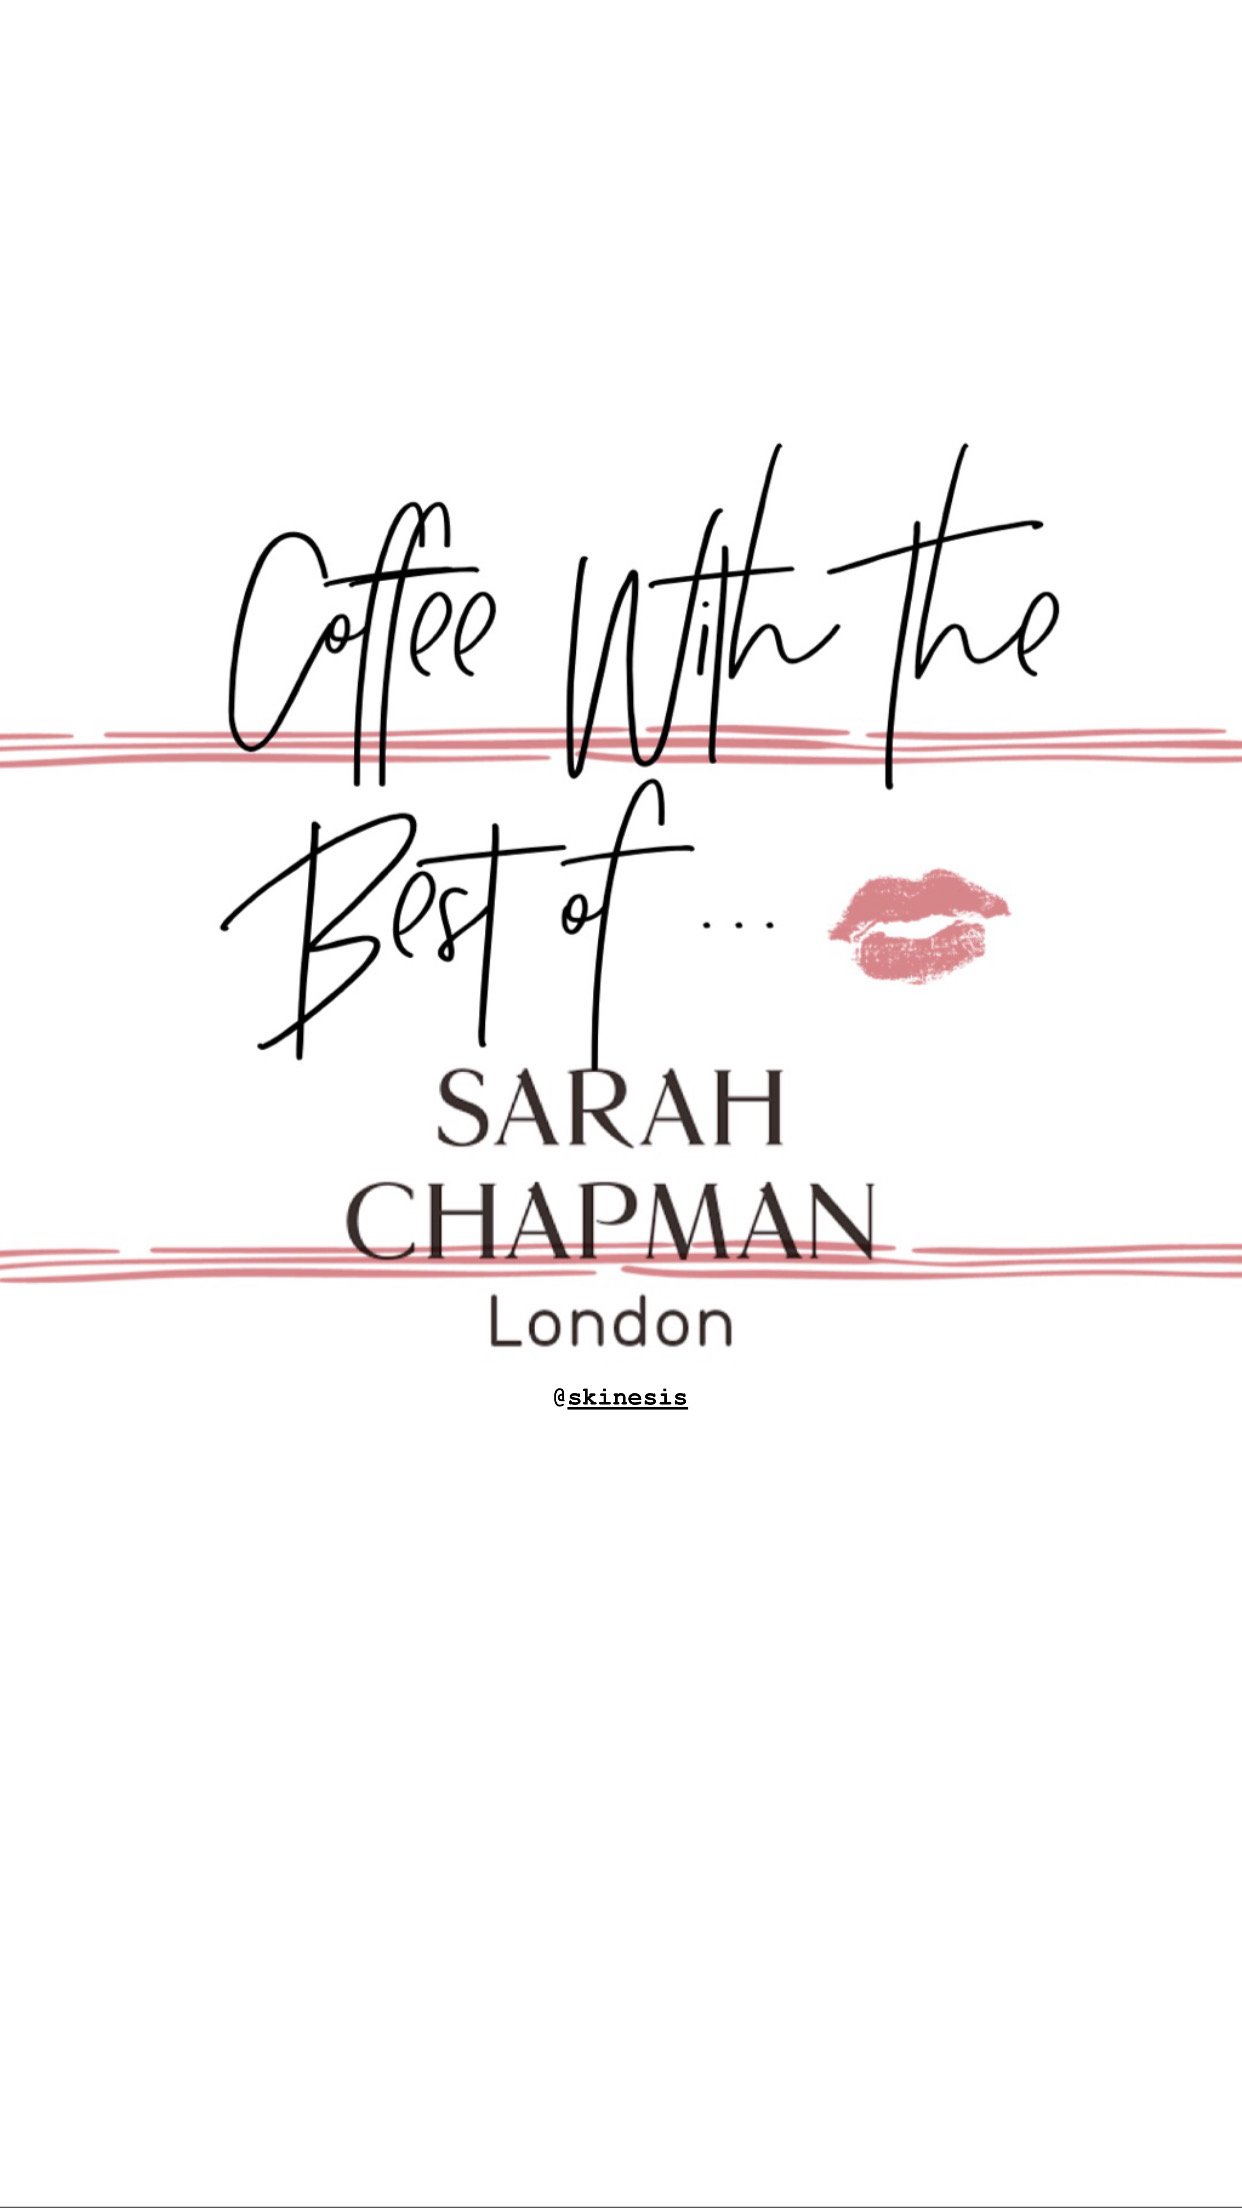 Coffee with the best of … Sarah Chapman ||IGTV